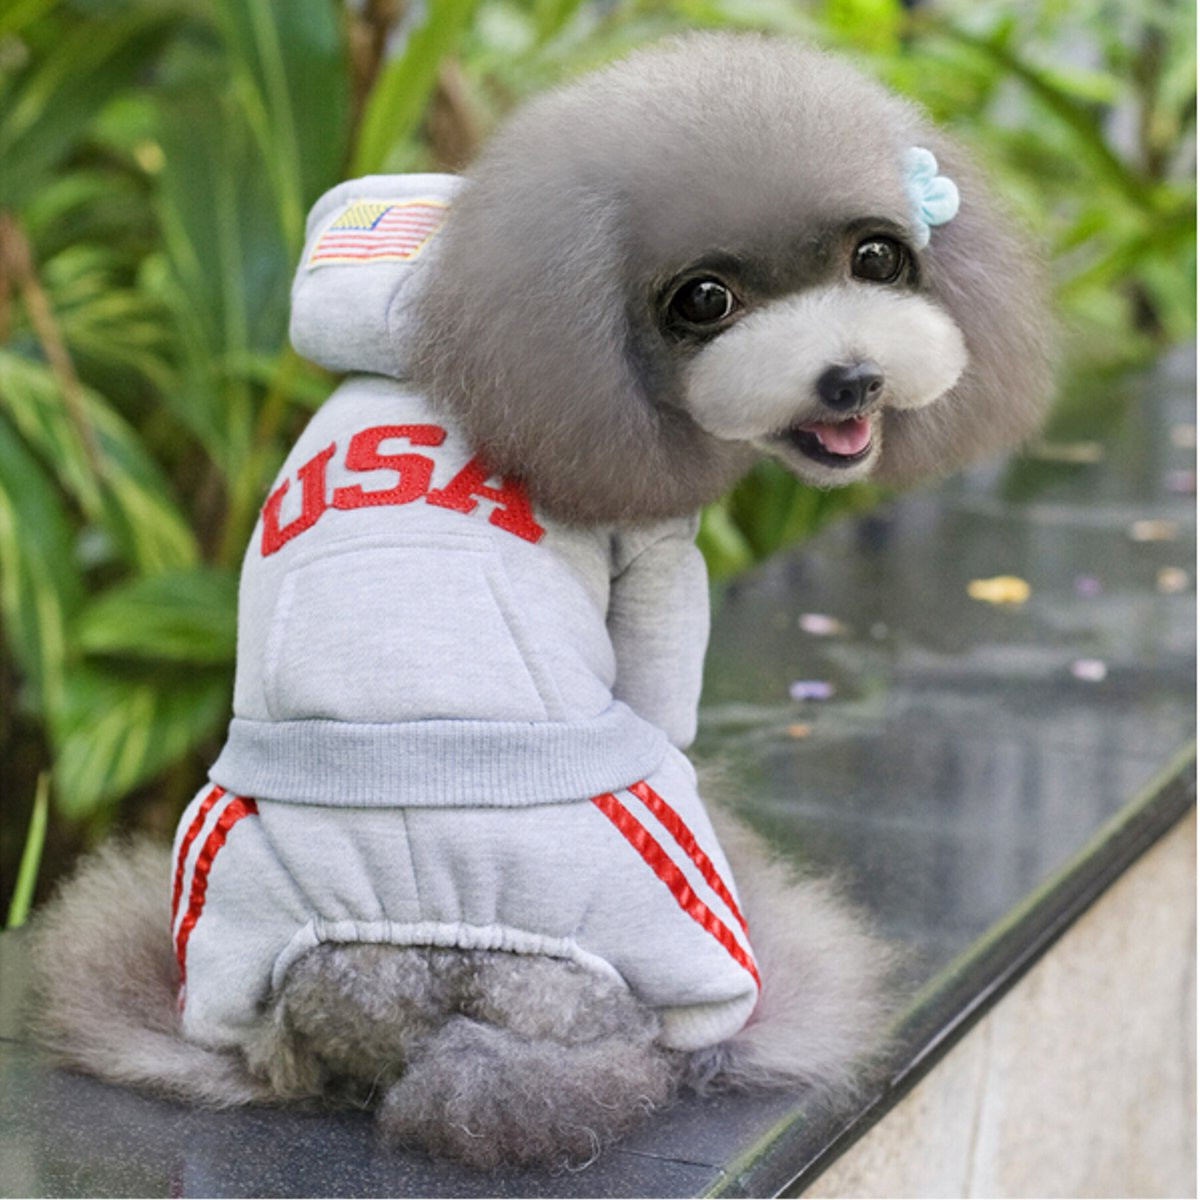 Pet Puppy Dog Clothes Winter Warm Jacket Coat Clothes ...